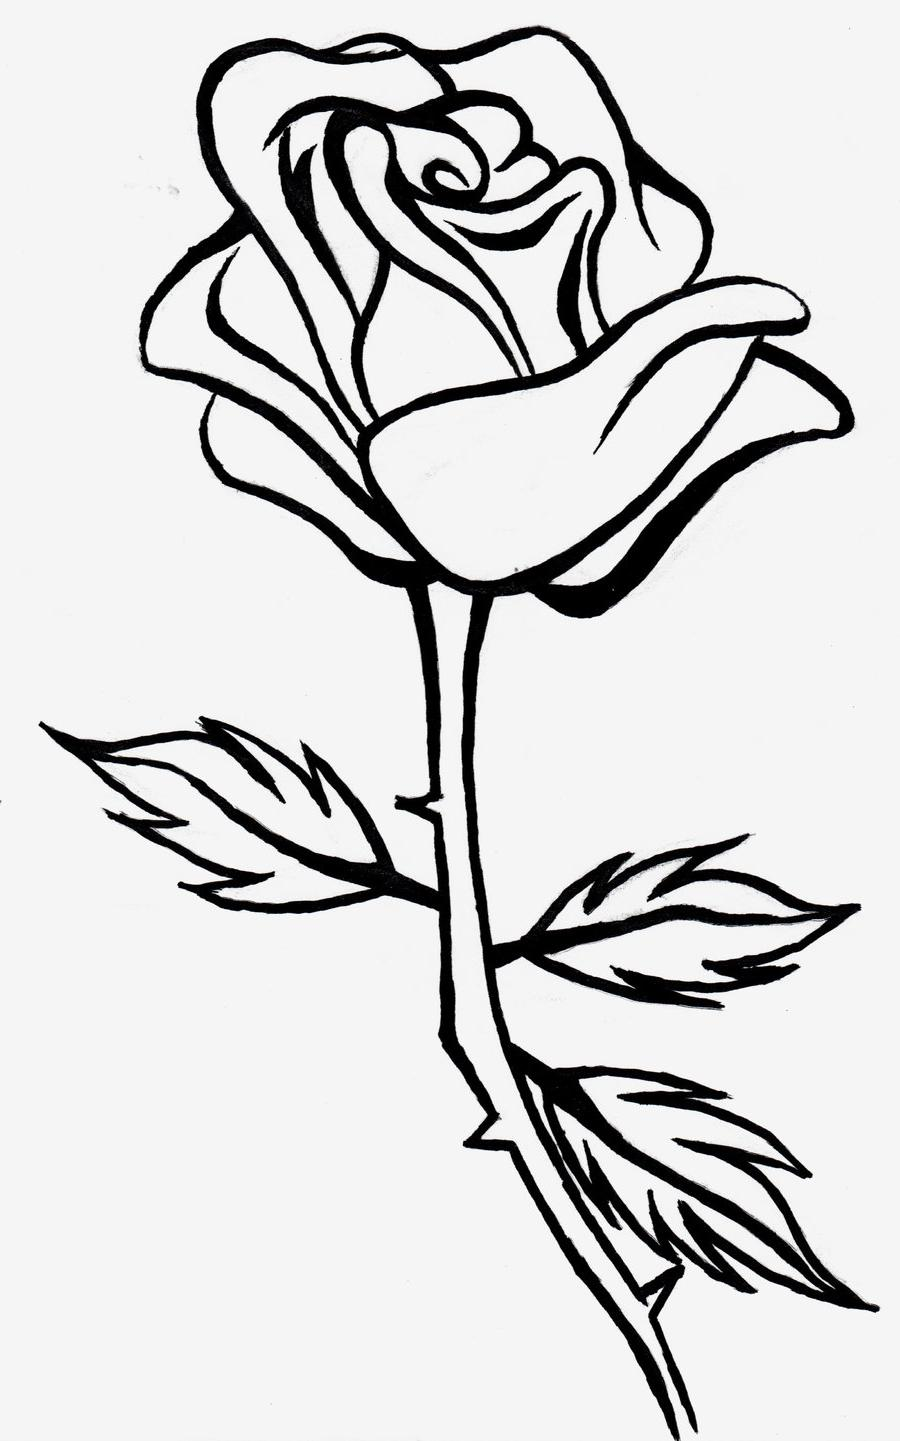 Rose clipart black and white clipart free download.